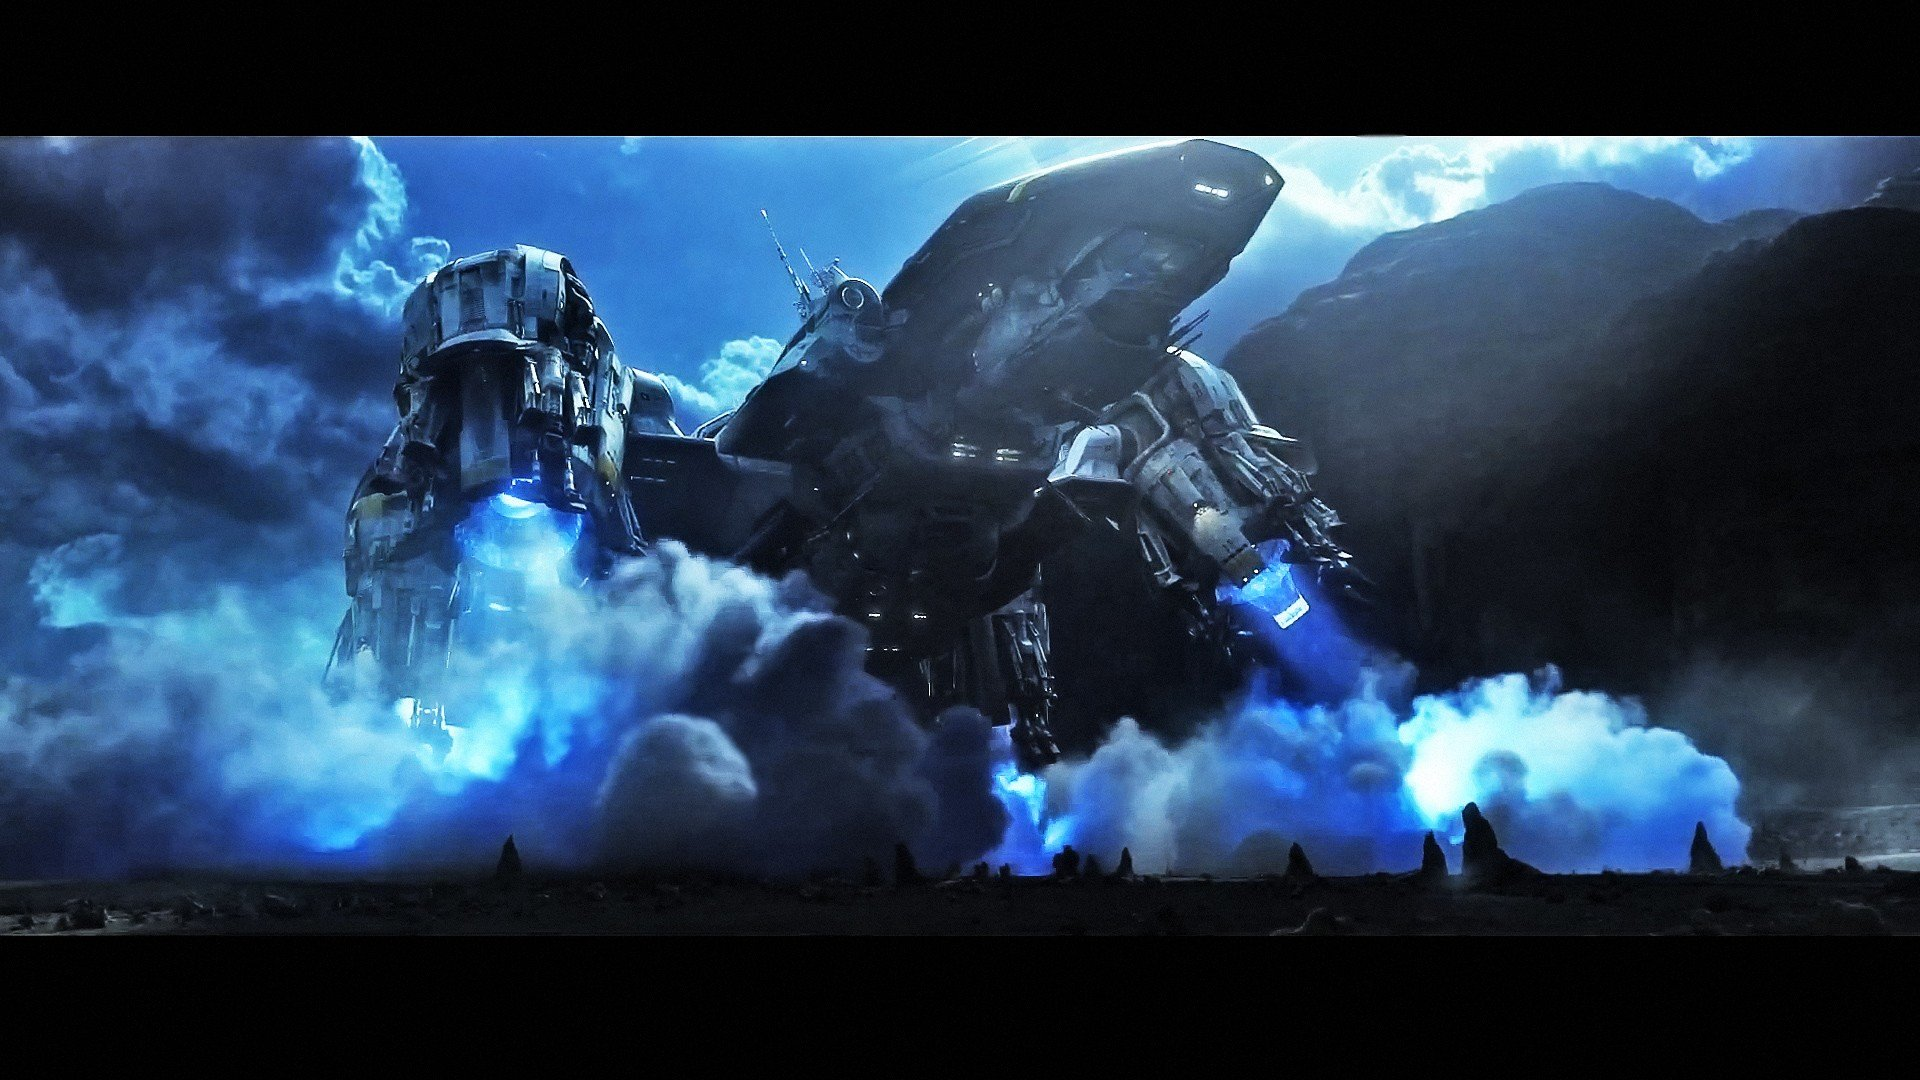 Space Shuttle Prometheus Alien wallpaper 1920x1080 280440 1920x1080